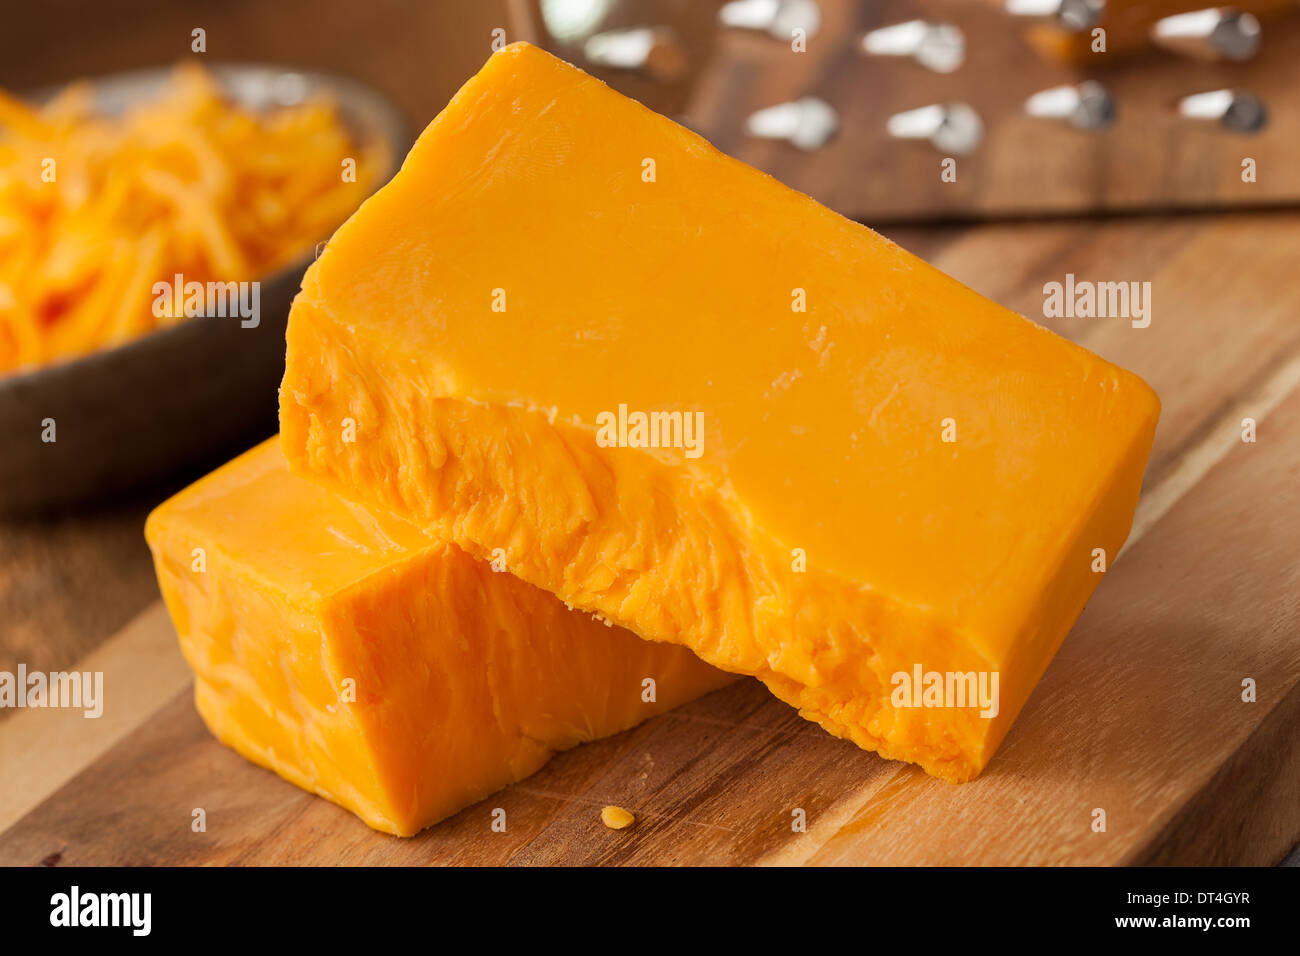 Organic Sharp Cheddar Cheese on a Cutting Board - Stock Image